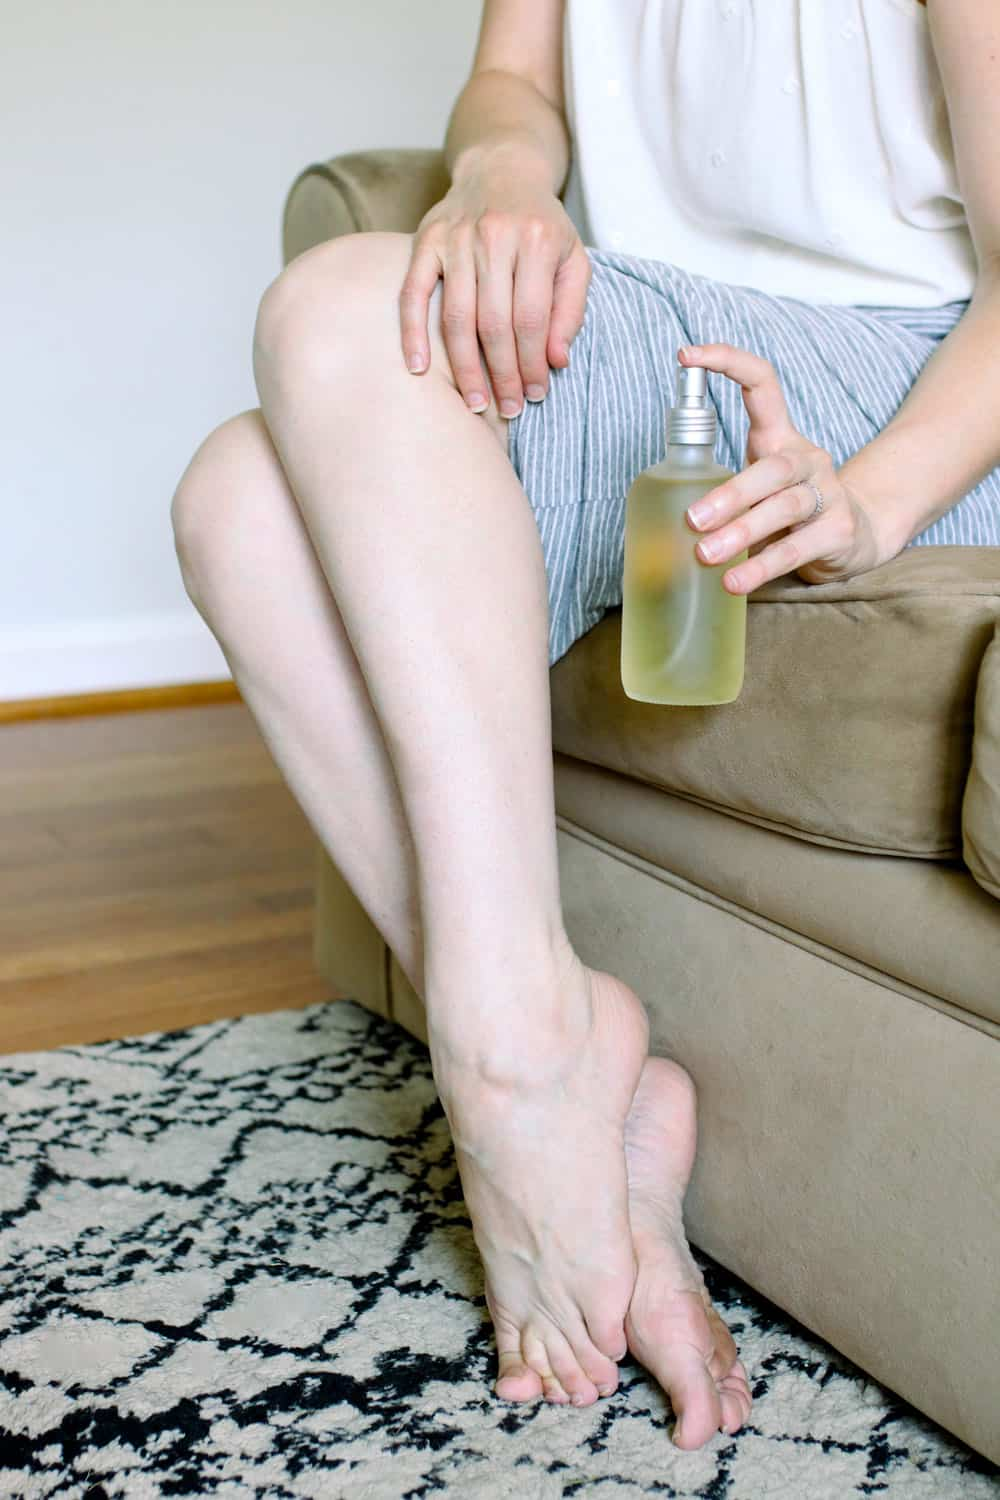 Banish Bumps with this Soothing DIY Razor Burn Spray